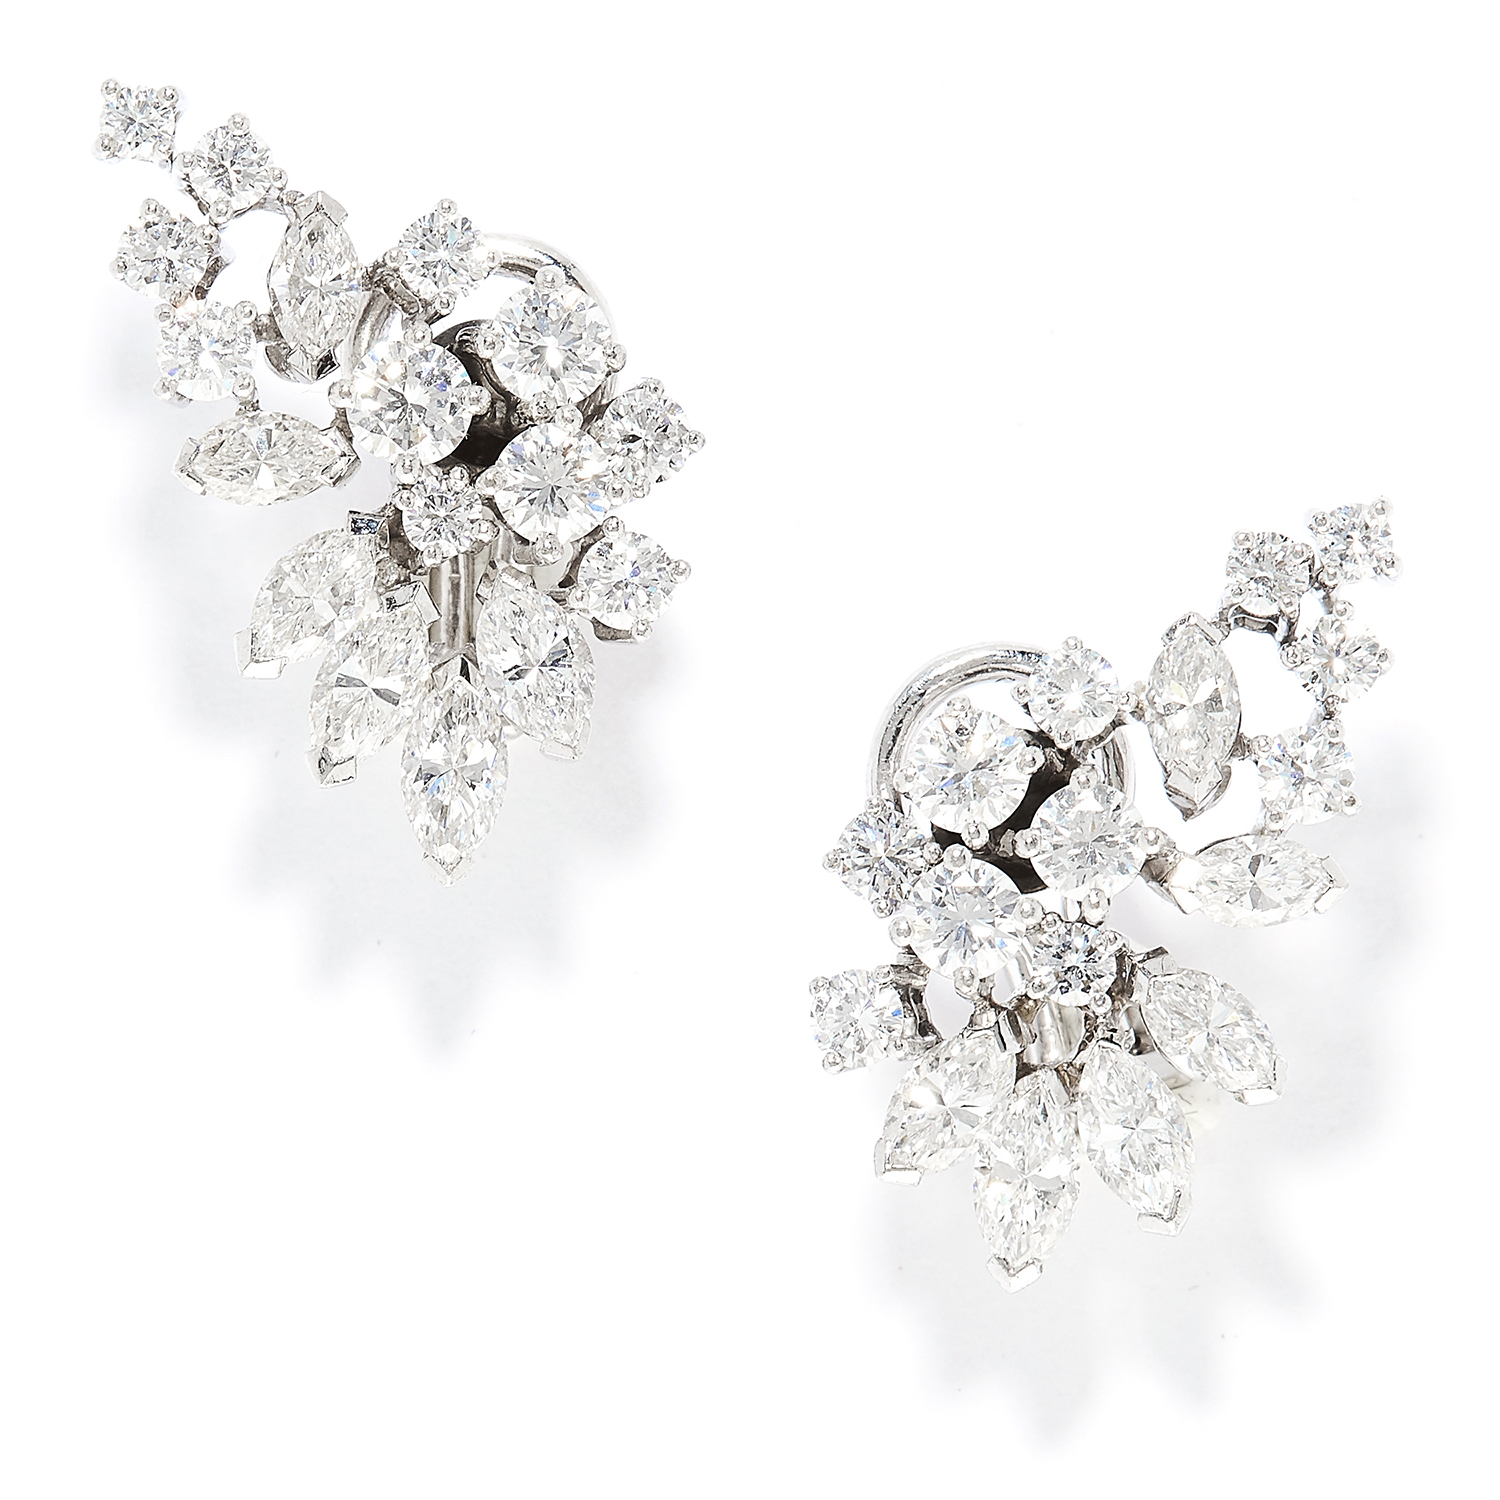 3.50 CARAT DIAMOND EARRINGS in 18ct white gold, in foliate motif set with round and marquise cut